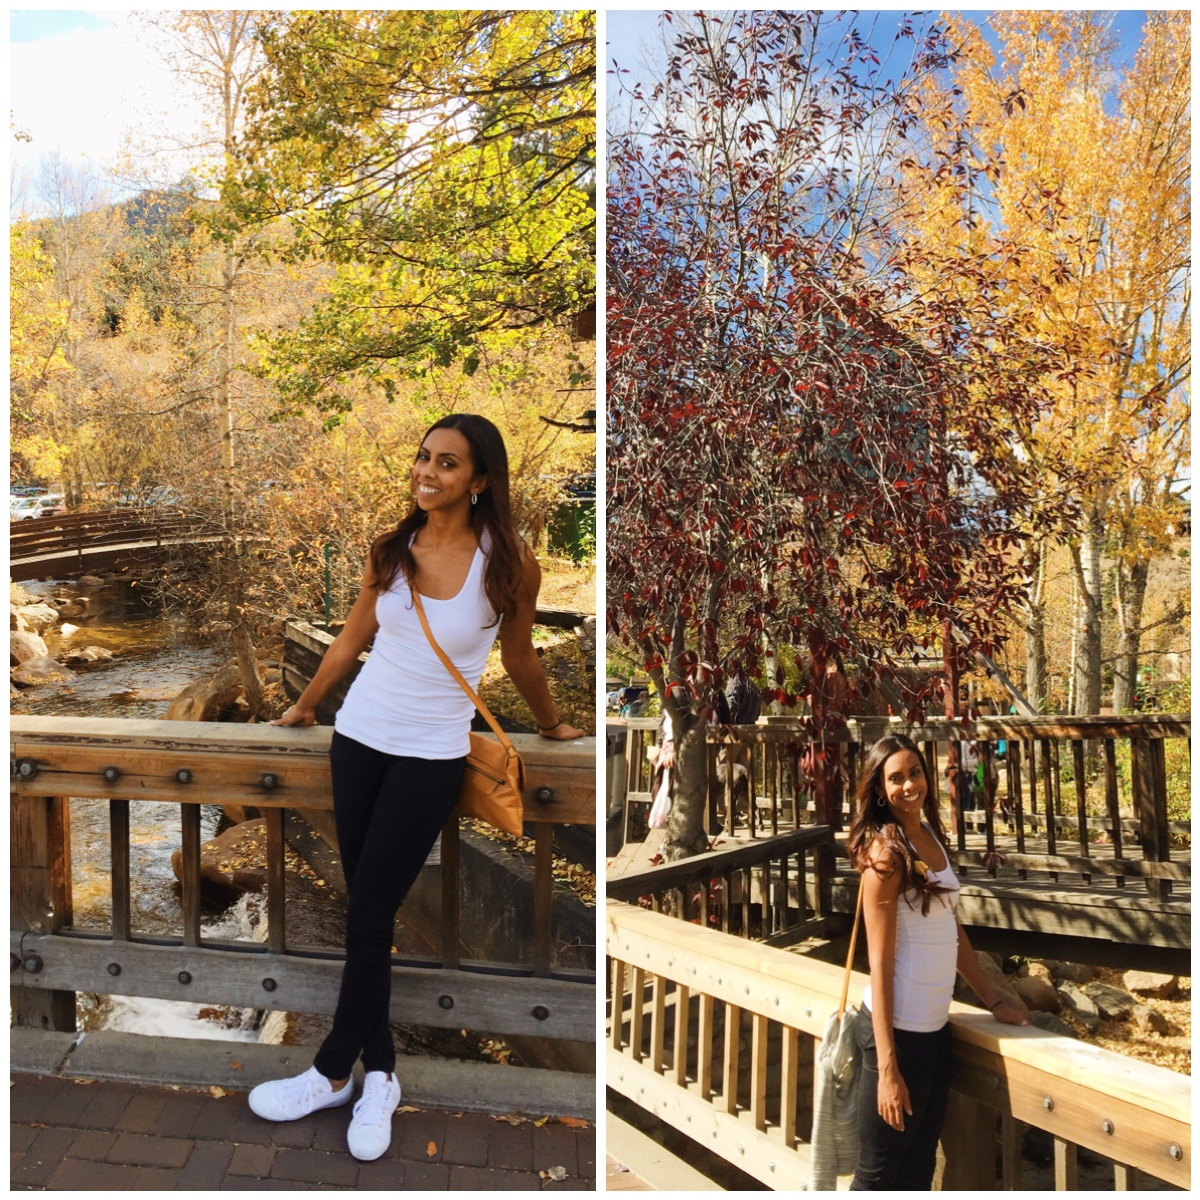 Clearly a California girl. Every time I saw some pretty leaves I wanted to take a picture in front of it.